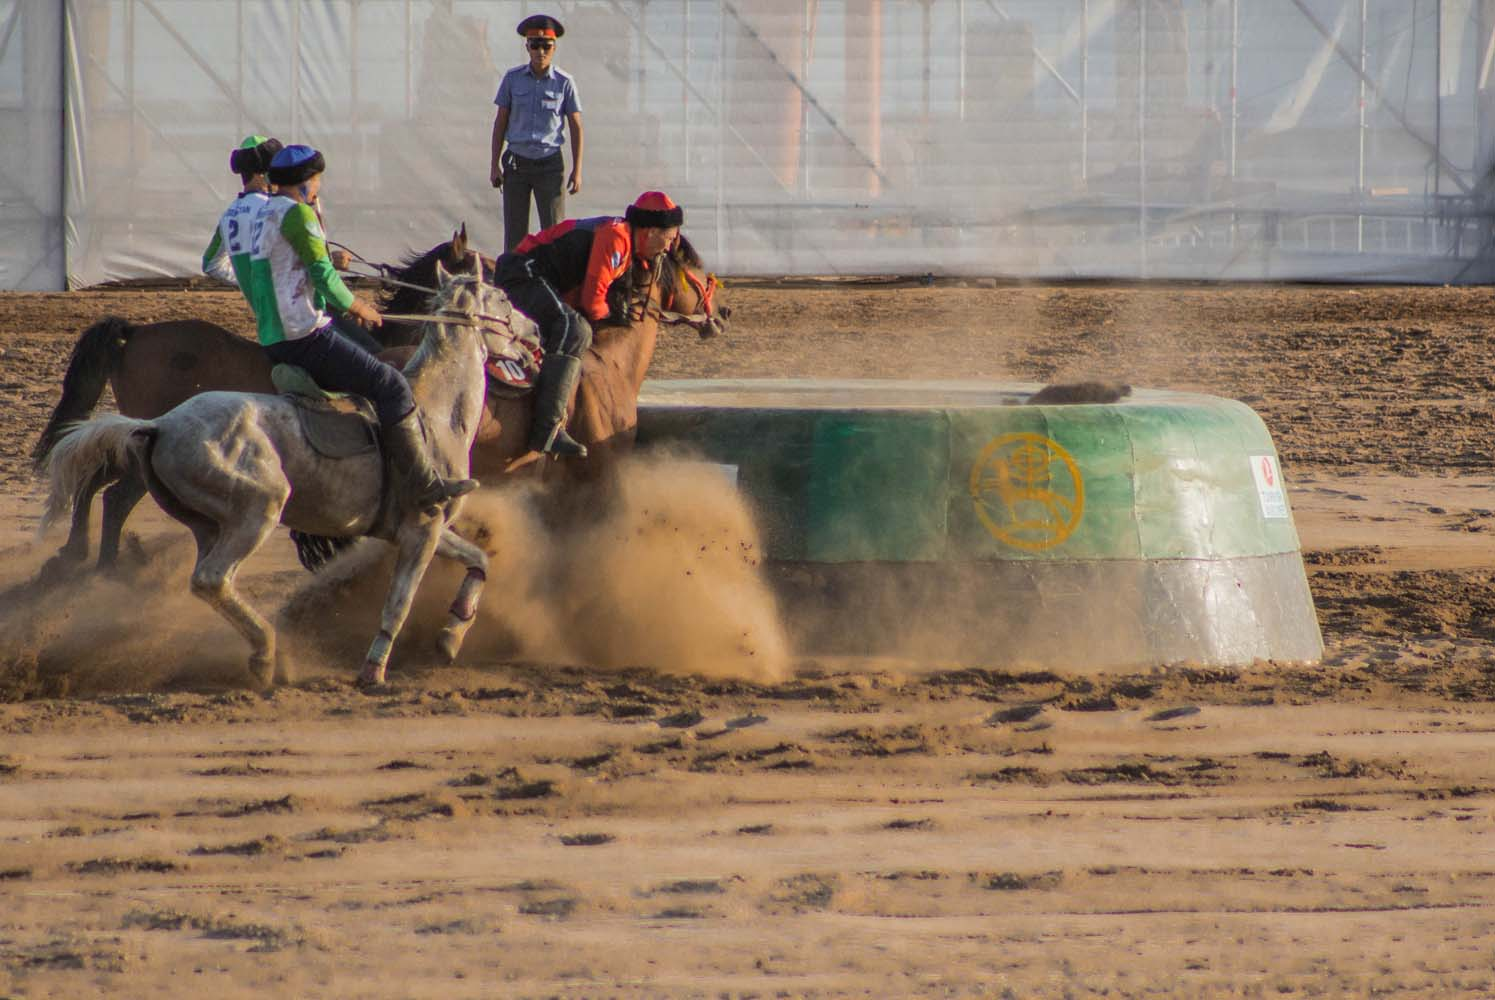 Have you heard of Kok Boru, the headless goat polo, a traditional Kyrgyz horseback competition? Follow me to the World Nomad Games in Kyrgyzstan to the shores of the Issyk-Kul lake.